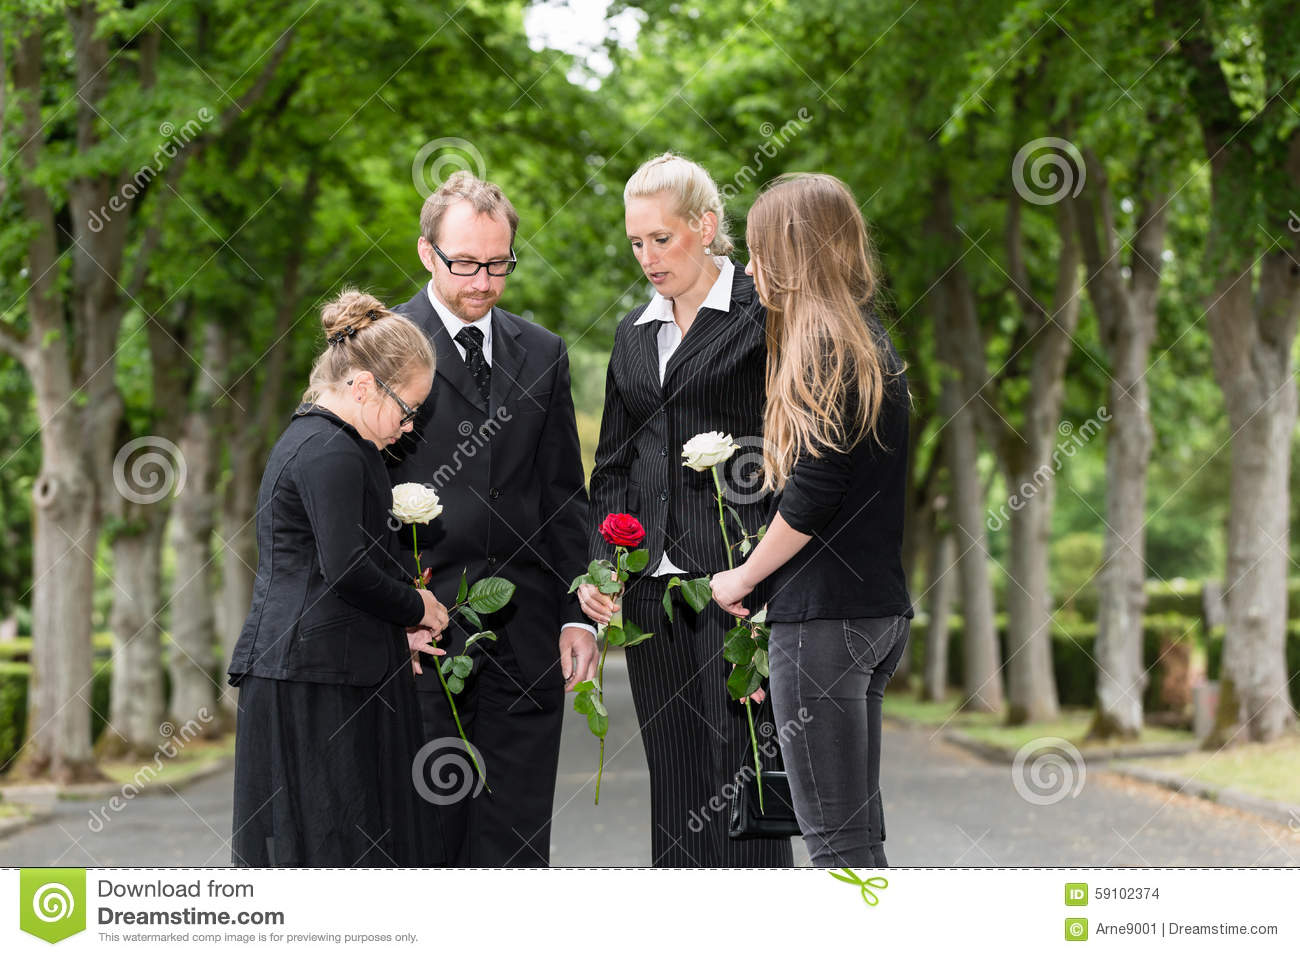 Family mourning on funeral at cemetery